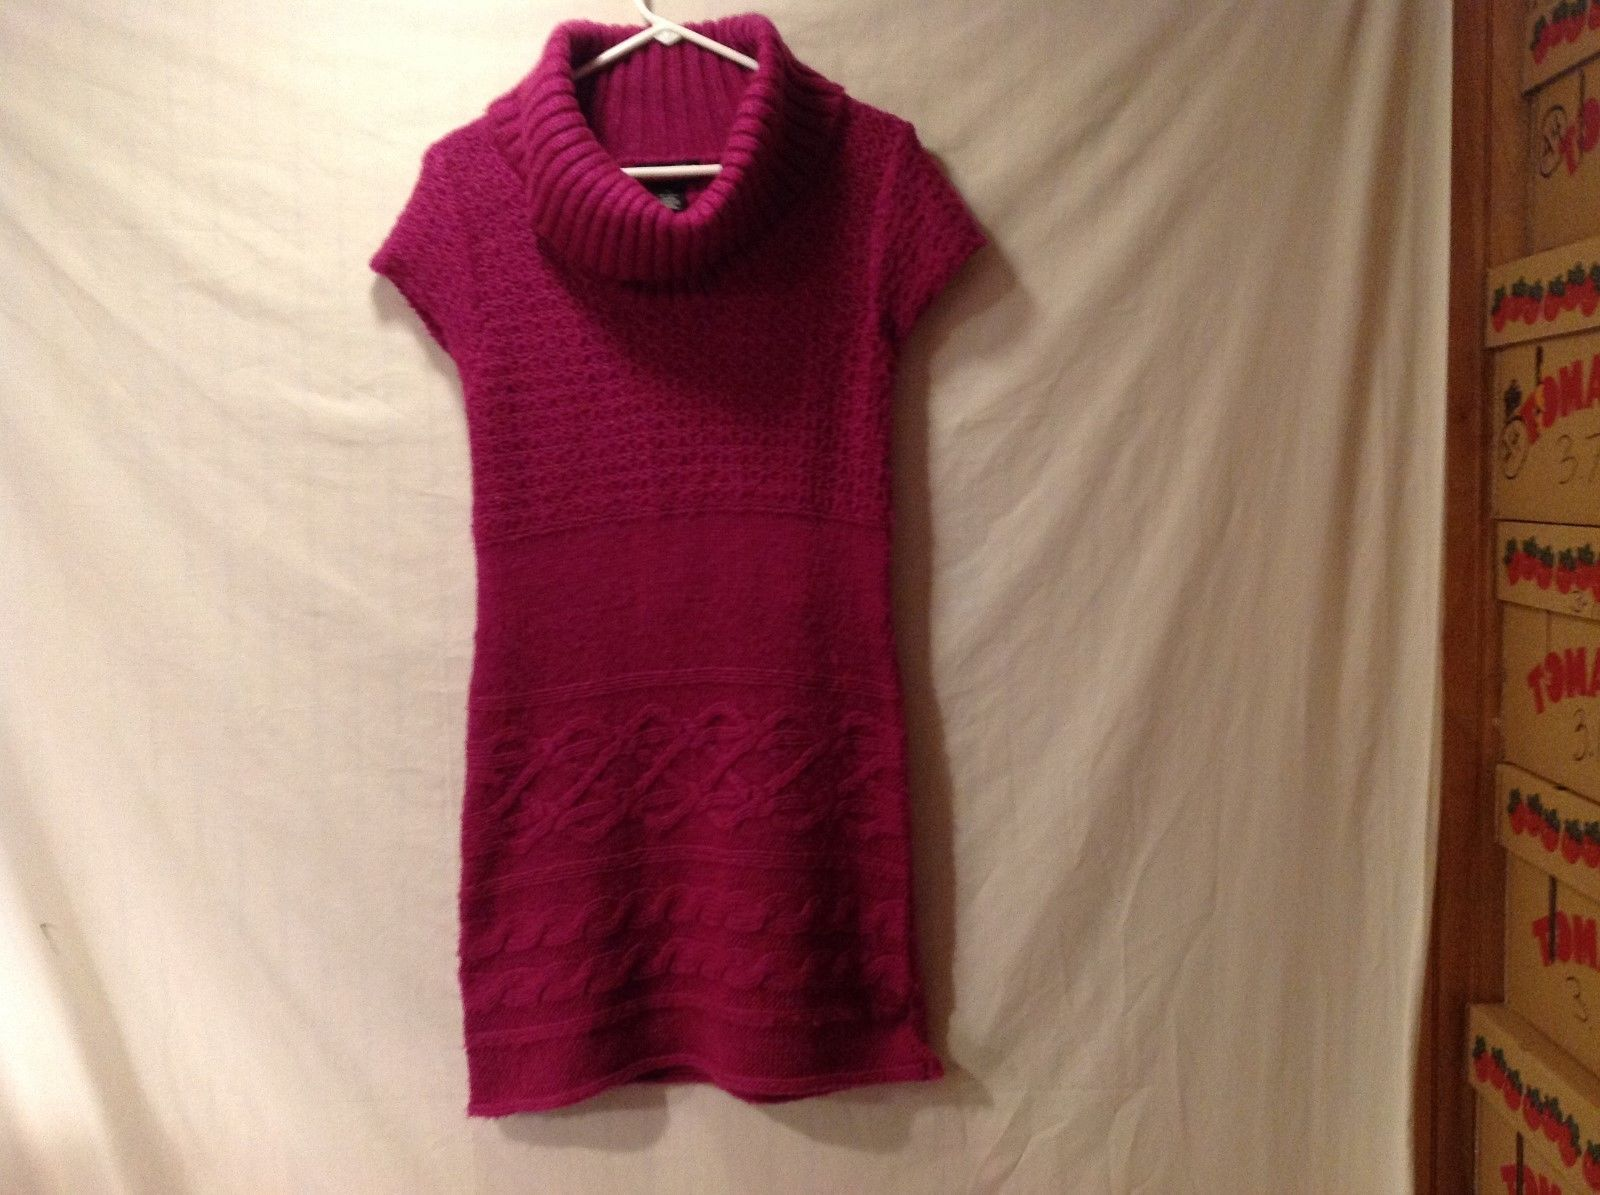 Women's Say What? XL Fuchsia Short Sleeve Turtleneck Sweater Dress